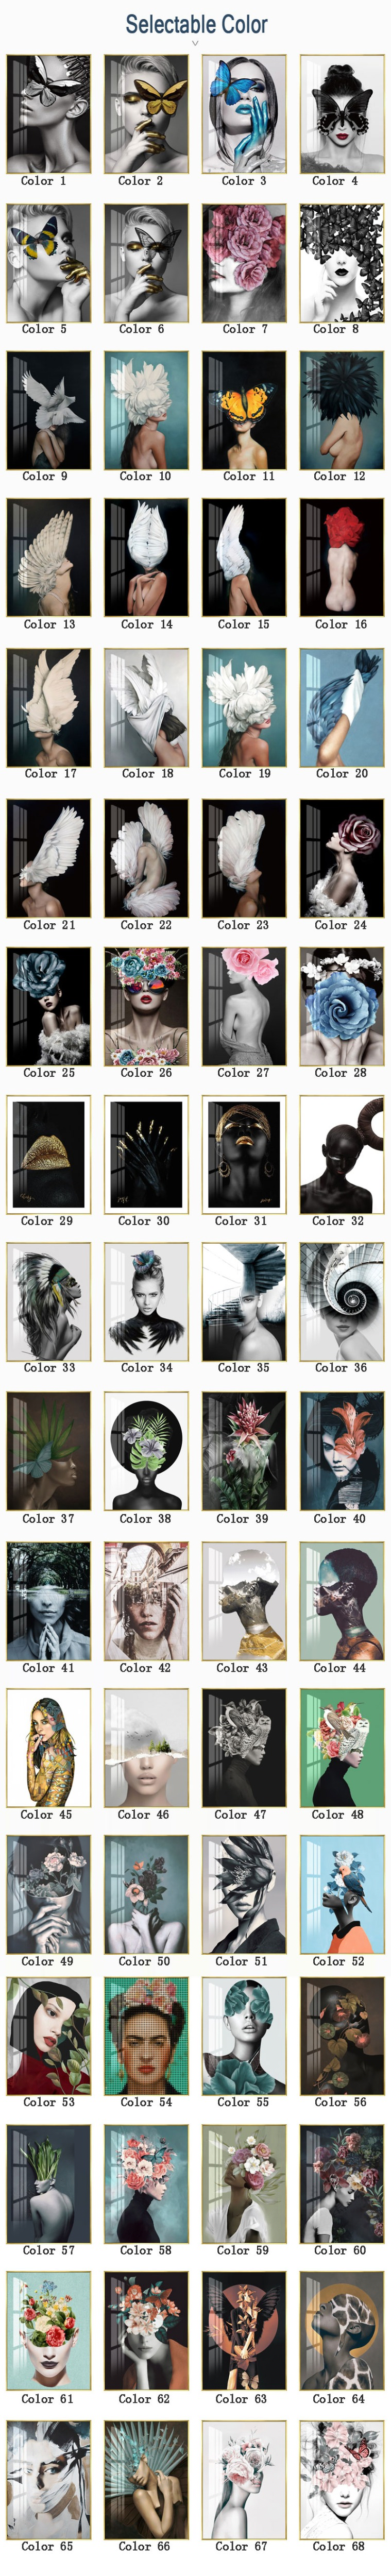 H6984cda2057249a0994cf0411a2a6036Q Modern Nordic Black And White Canvas Painting Art Print Wall Poster Abstract Girl Wall Pictures Wall Art for Bedroom Living Room